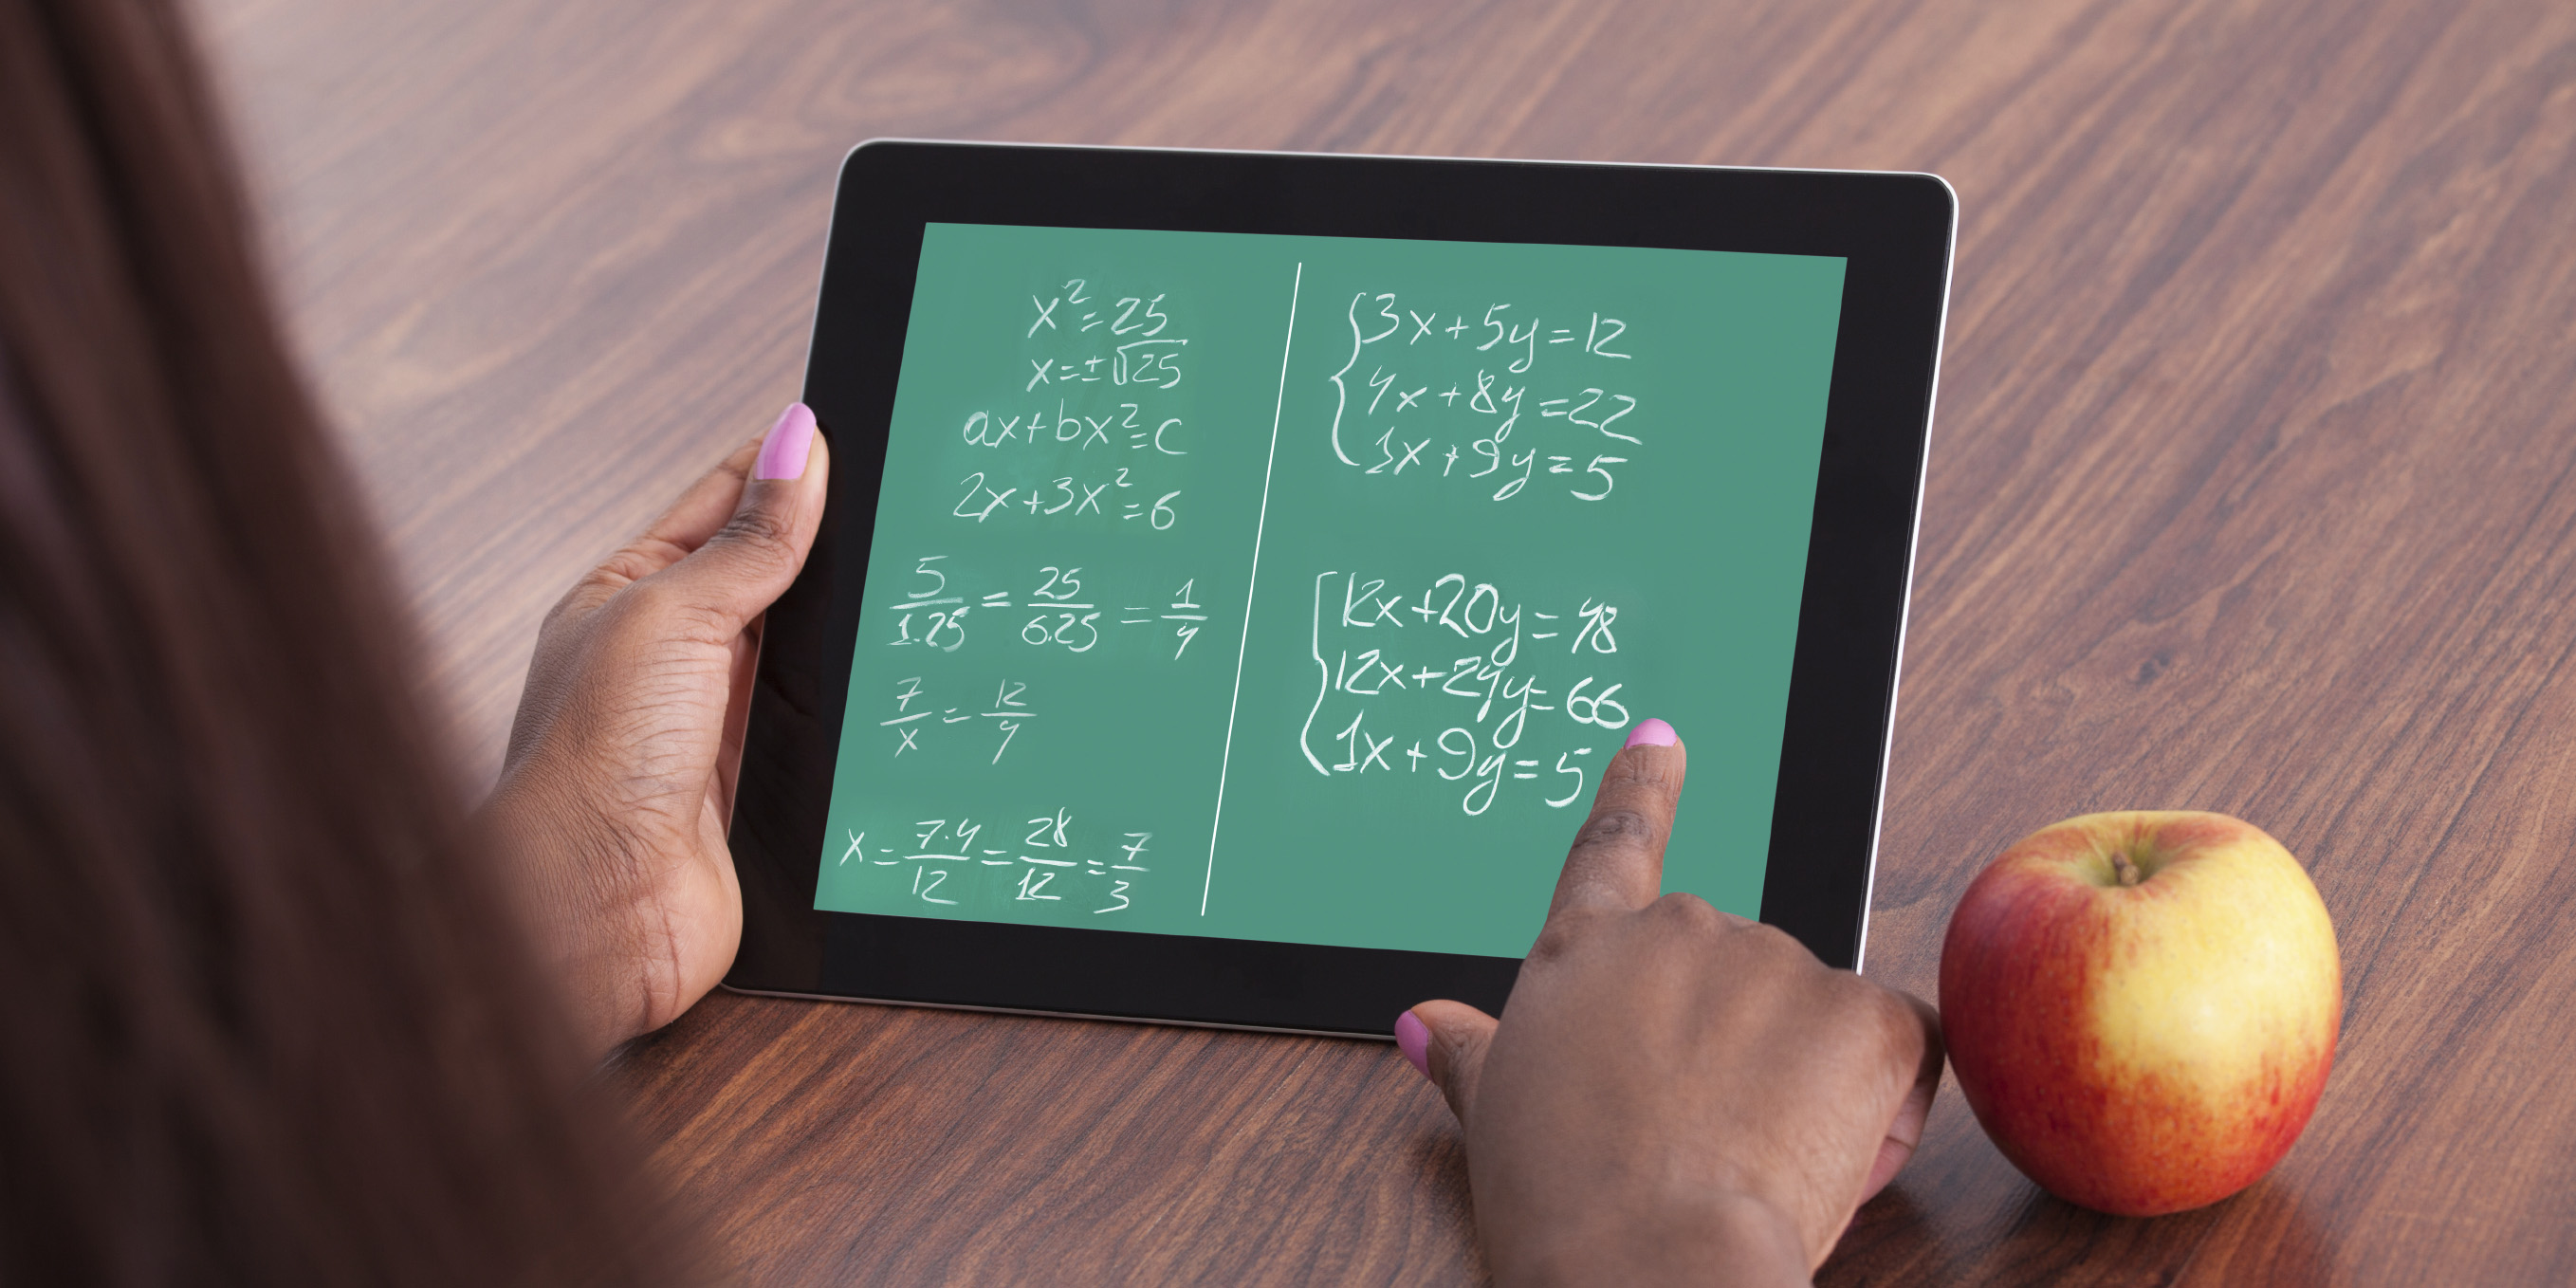 Marriage in nepal essay